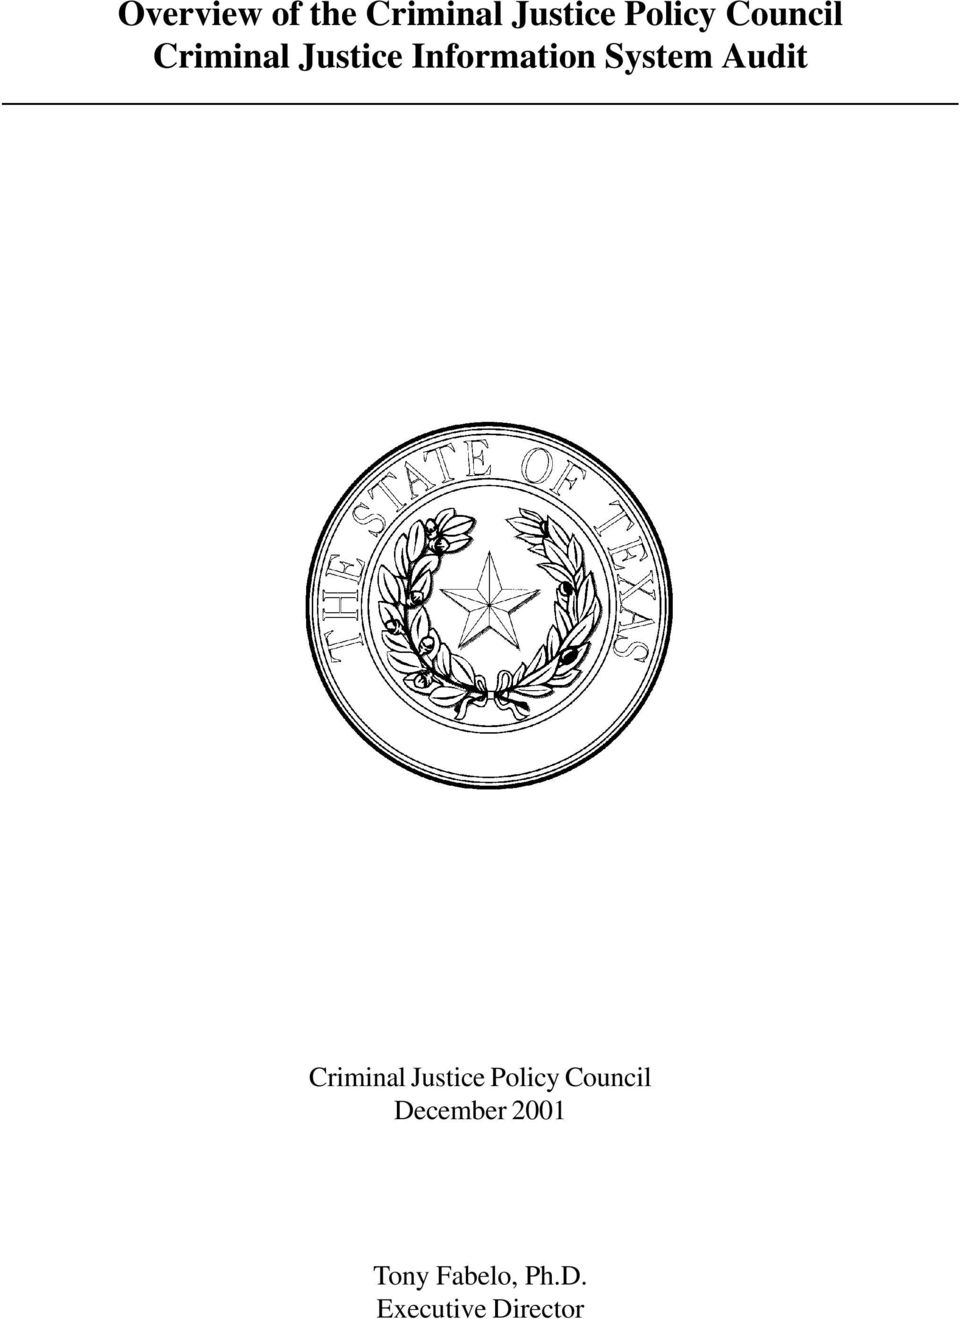 Audit Criminal Justice Policy Council